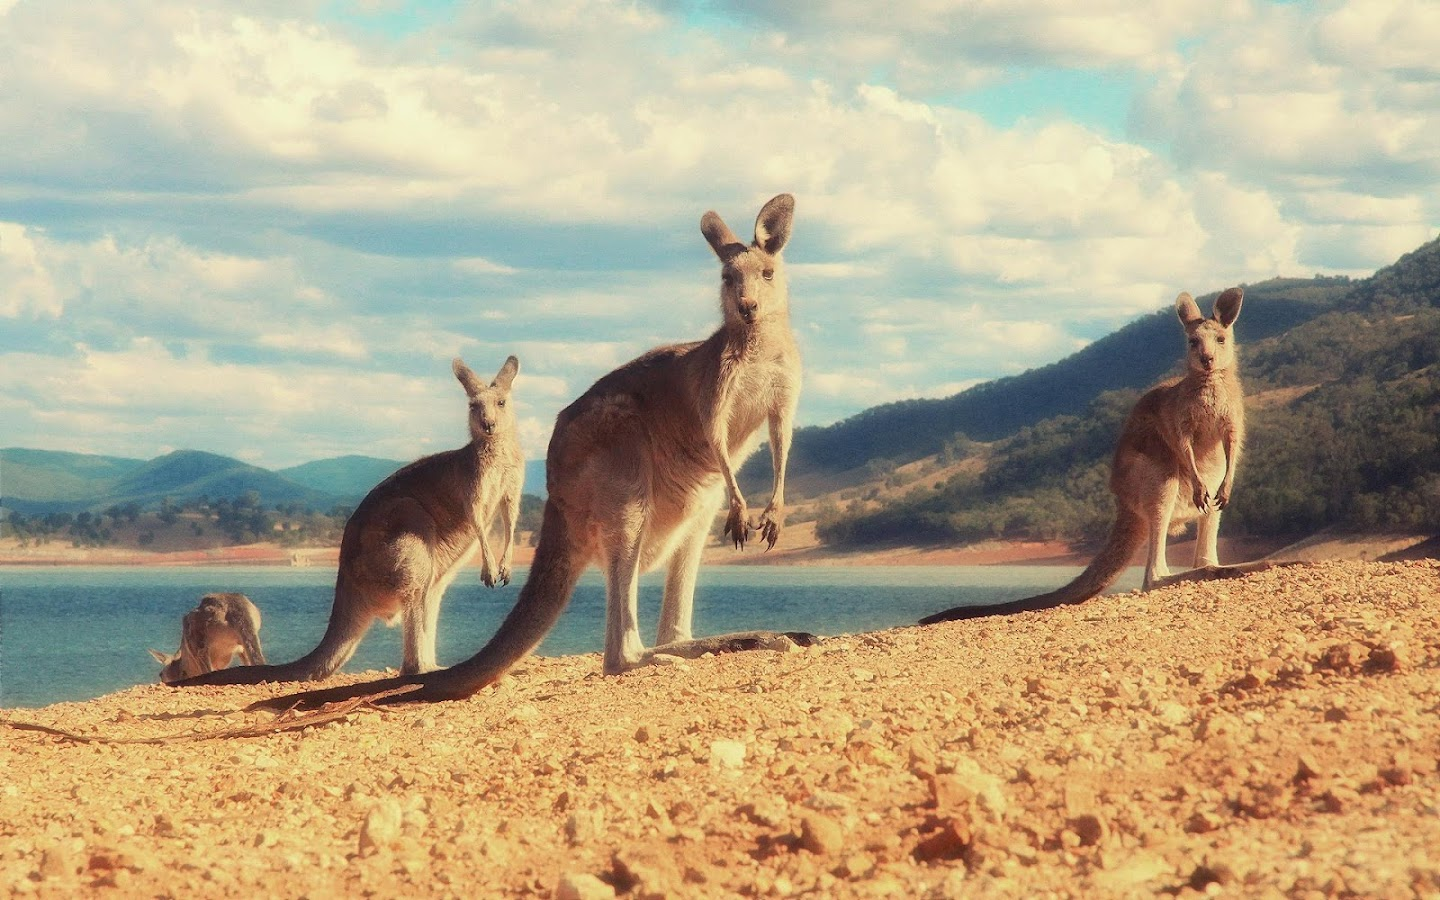 Kangaroo wallpaper android apps on google play for Home wallpaper joey s